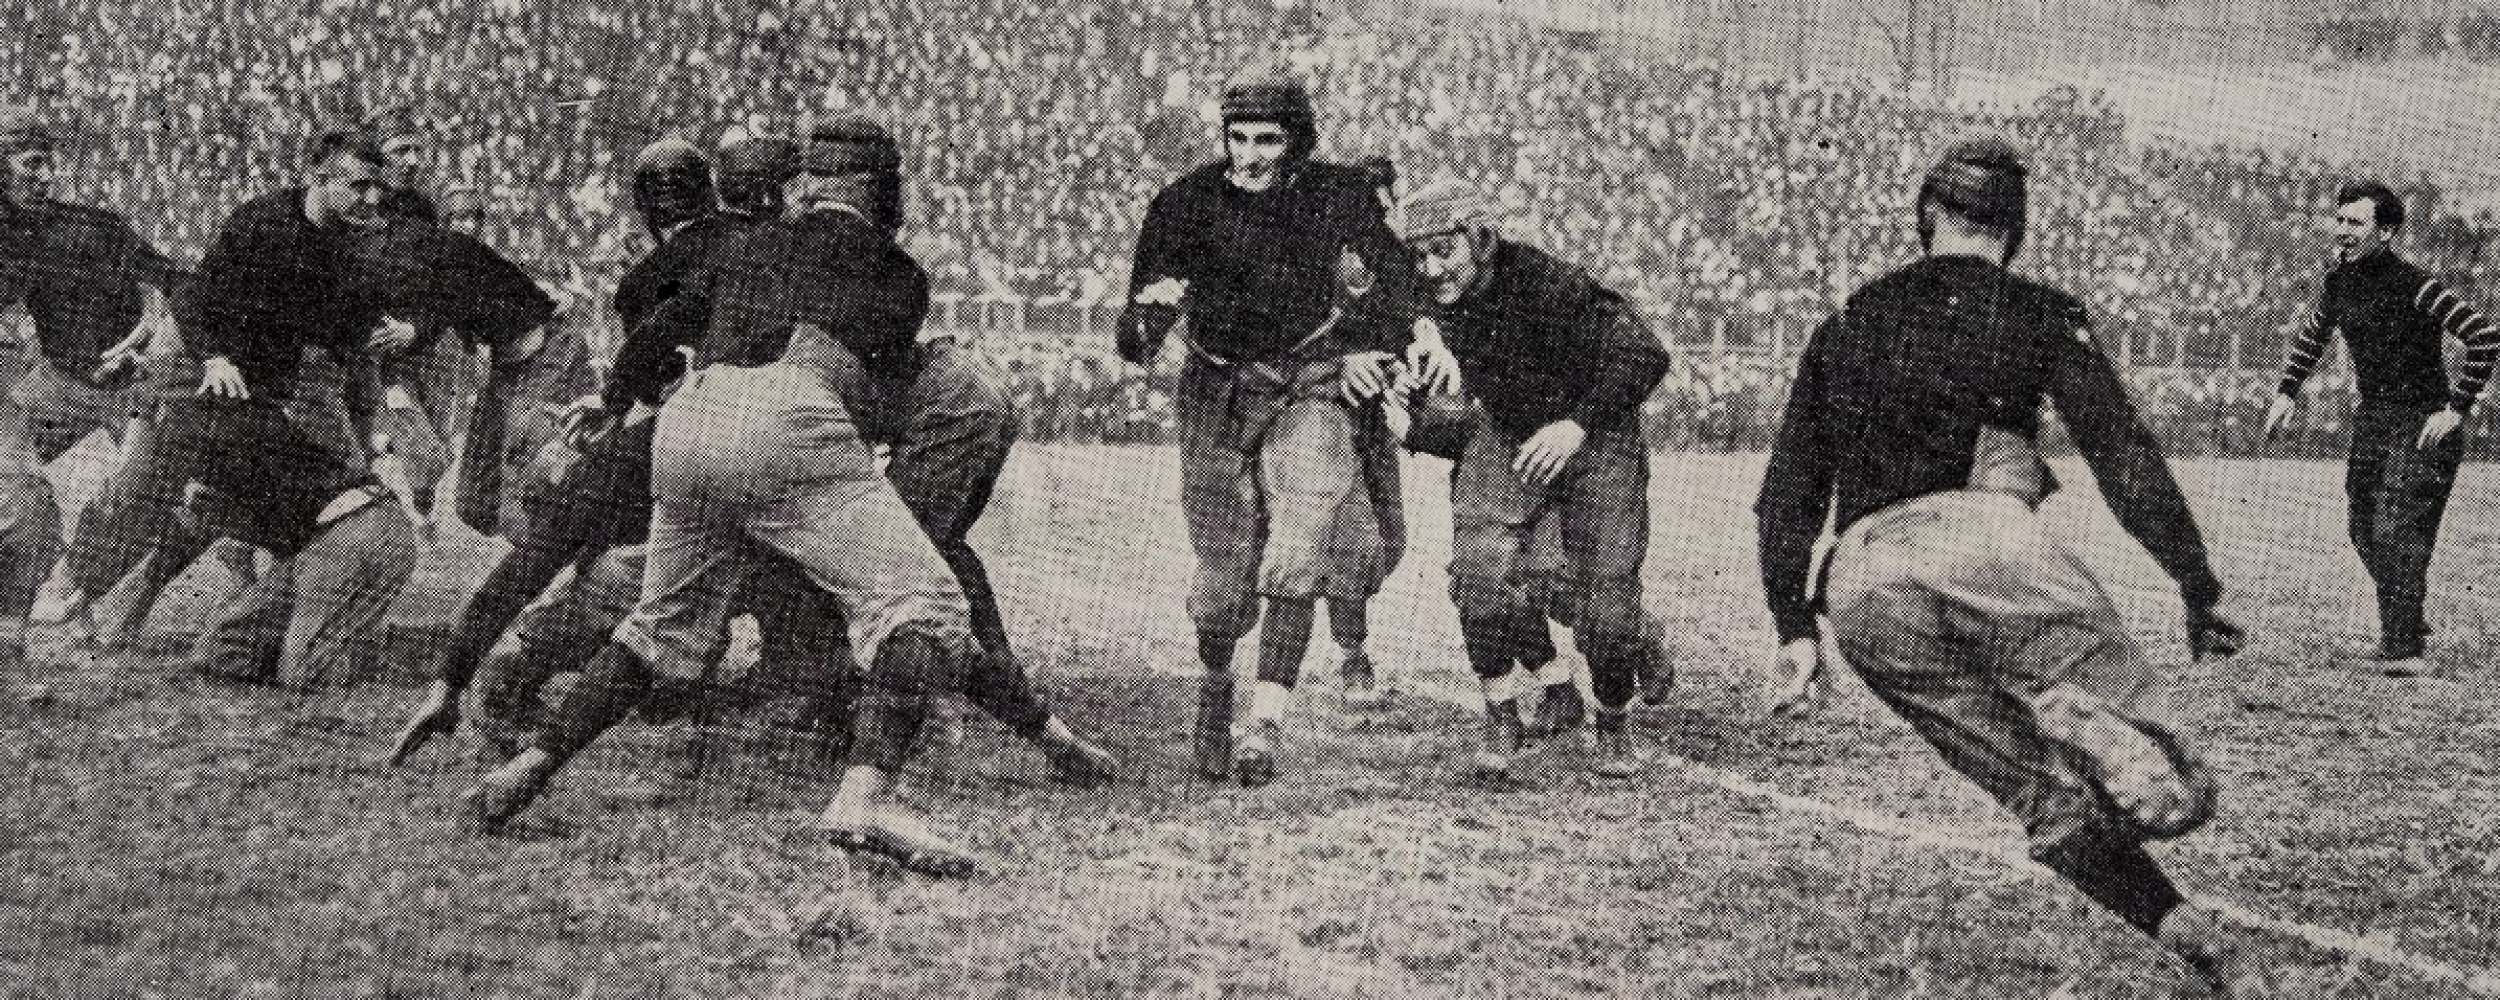 Leonard Teddy Baehr carries the ball at UC on Oct. 31, 1914.